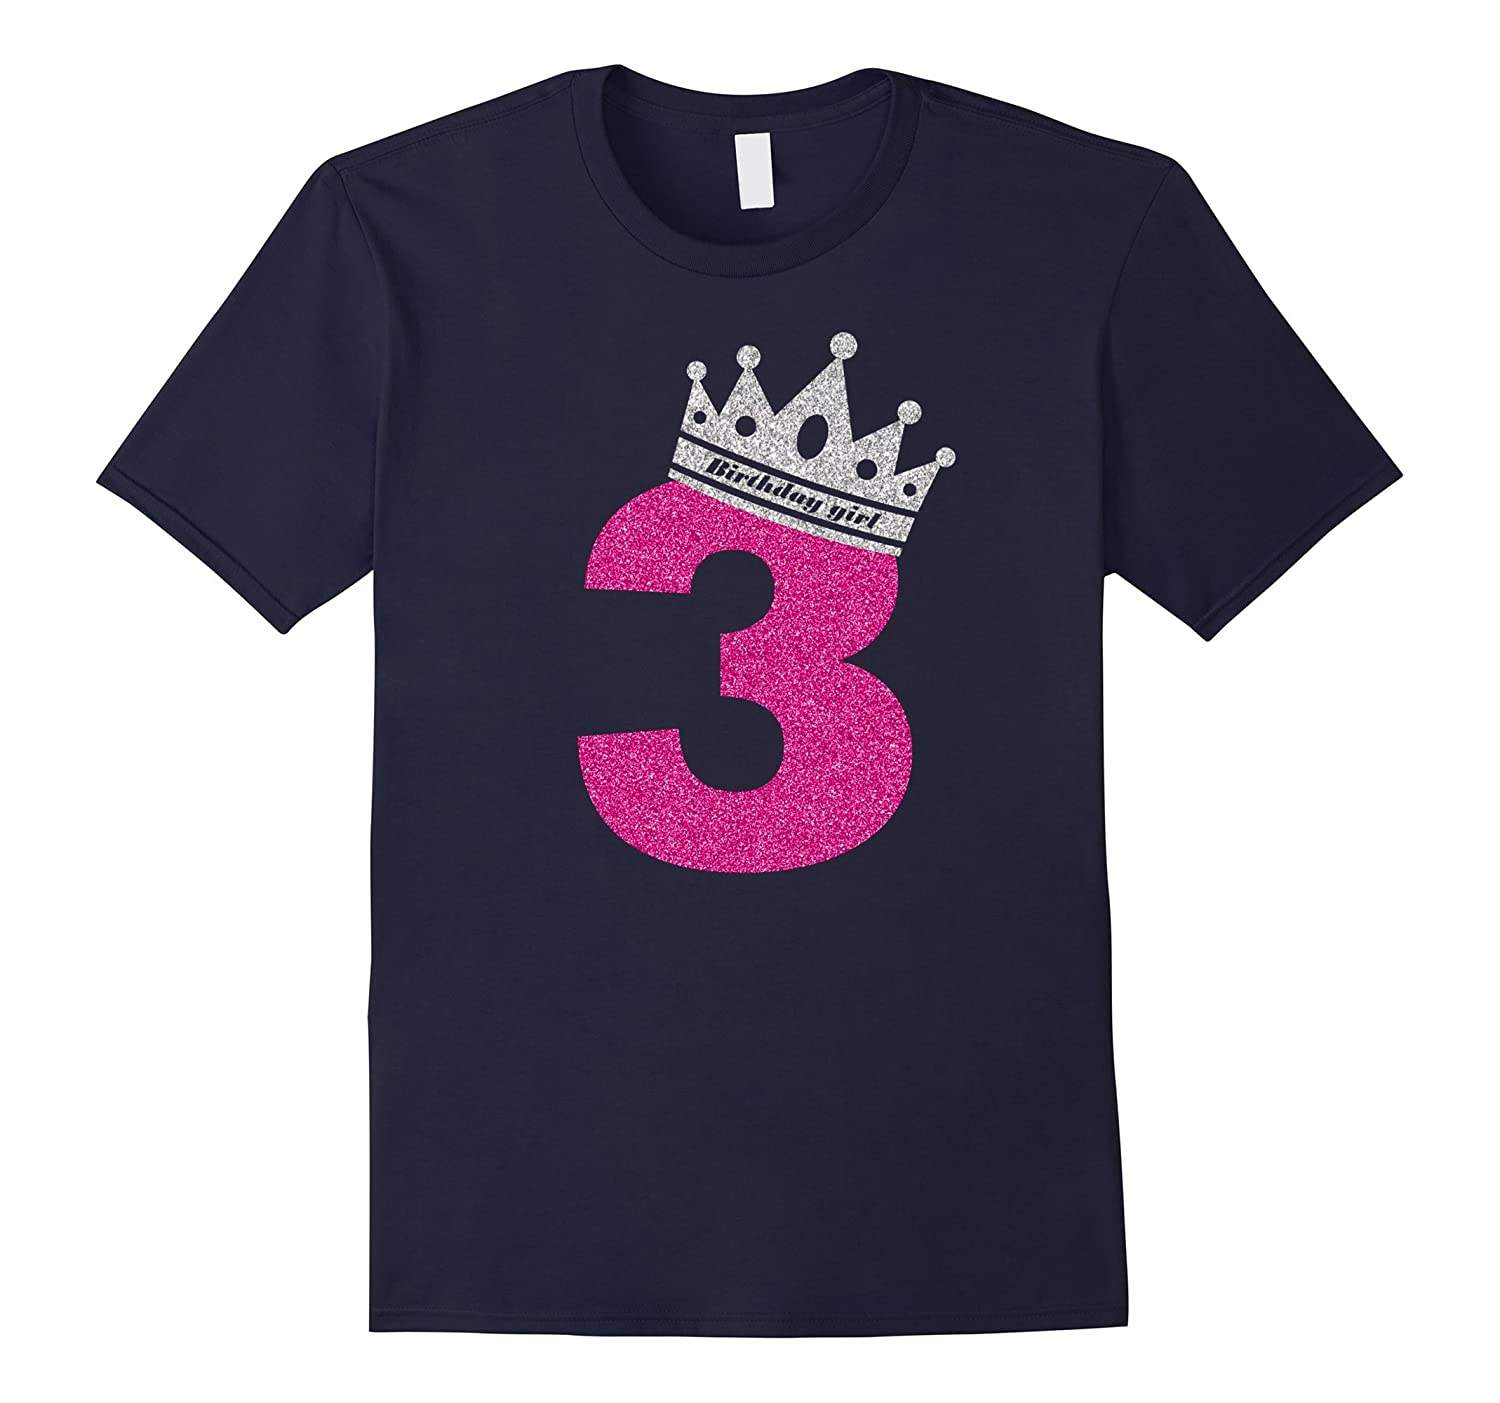 3rd Birthday Shirt Girl Princess - Happy Birthday Girl Shirt-FL